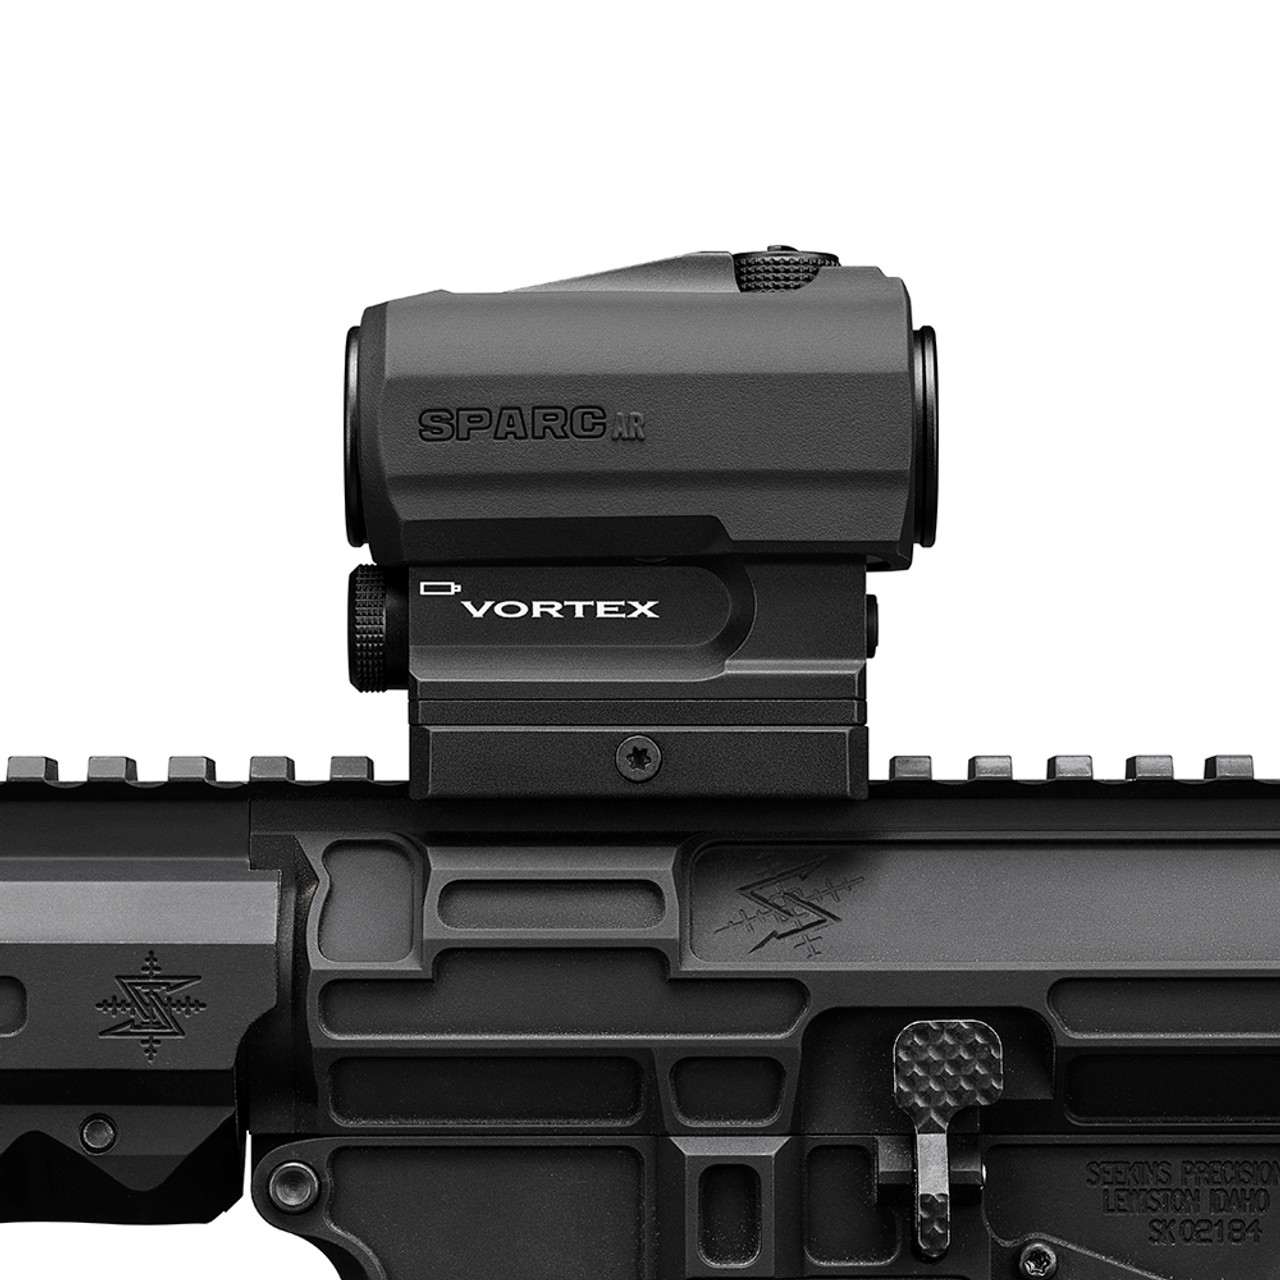 Vortex SPARC AR Red Dot (LED Upgrade)